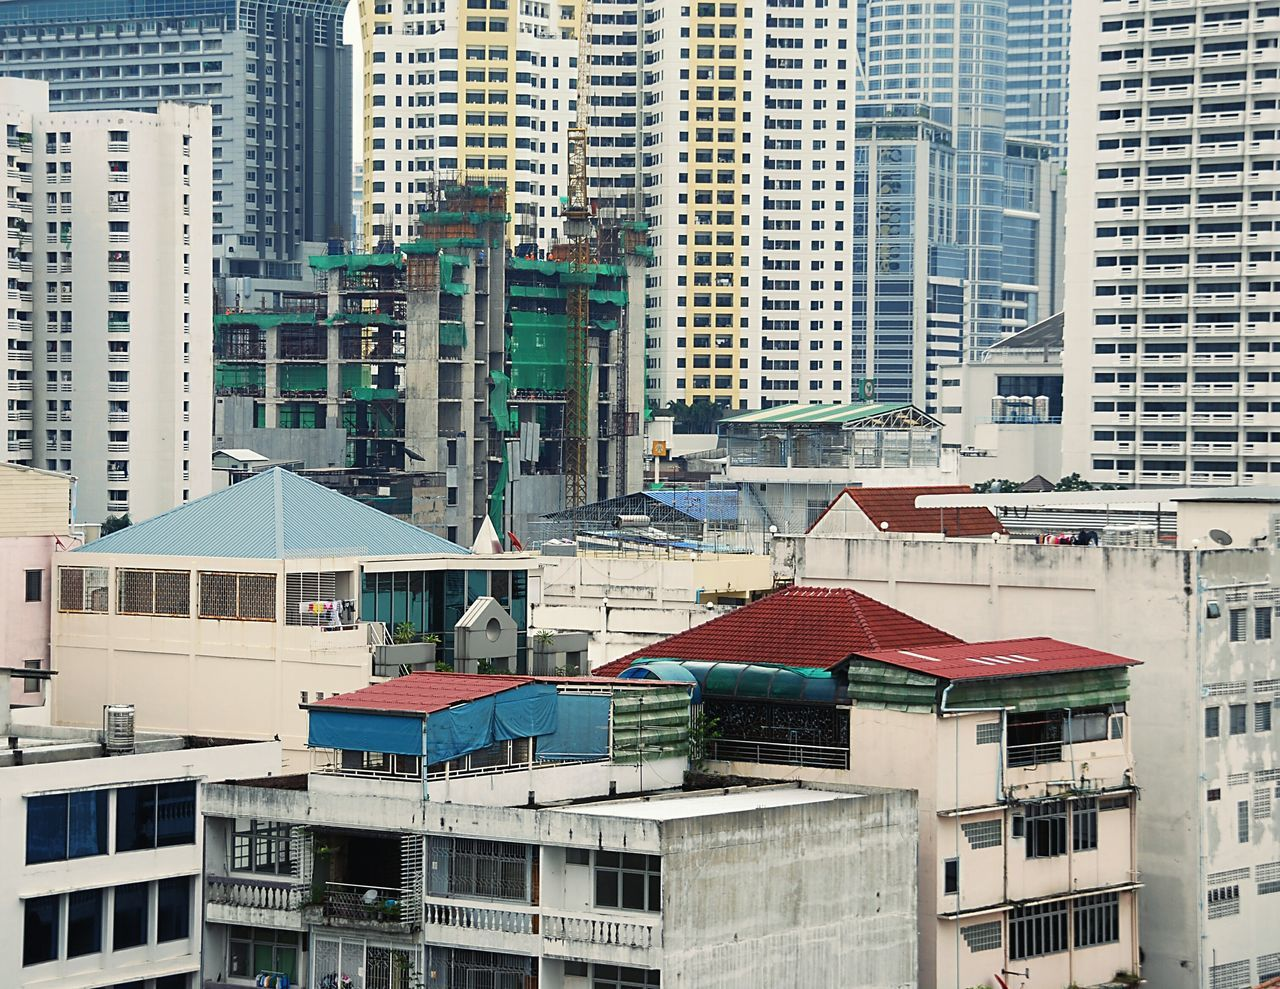 Bangkok Cityscape Architecture At Work Rome Wasn't Built In A Day Modern Architecture Urban Geometry Under Construction... My Eyes For Architecture Wrinkles Of The City  Construction City View  Windows Changing The World Urban Exploration How Do We Build The World? GetYourGuide Cityscapes City Flyfish Album Travel EyeEm Best Shots Urban Lifestyle NEM Architecture The Architect - 2016 EyeEm Awards